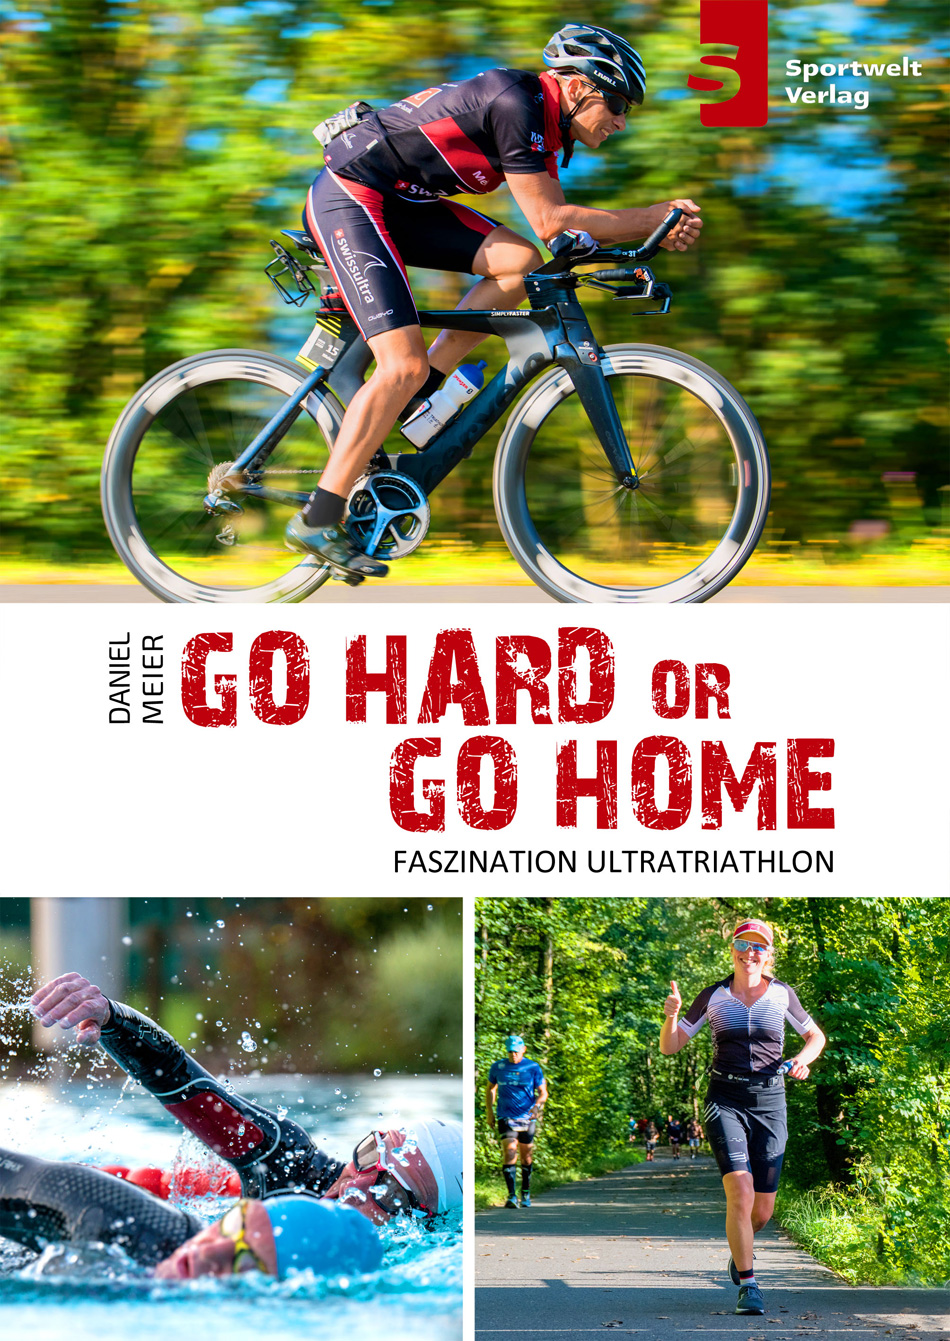 Go Hard or go Home - Faszination Ultra-Triathlon - Daniel Meier und Iris Hadbawnik